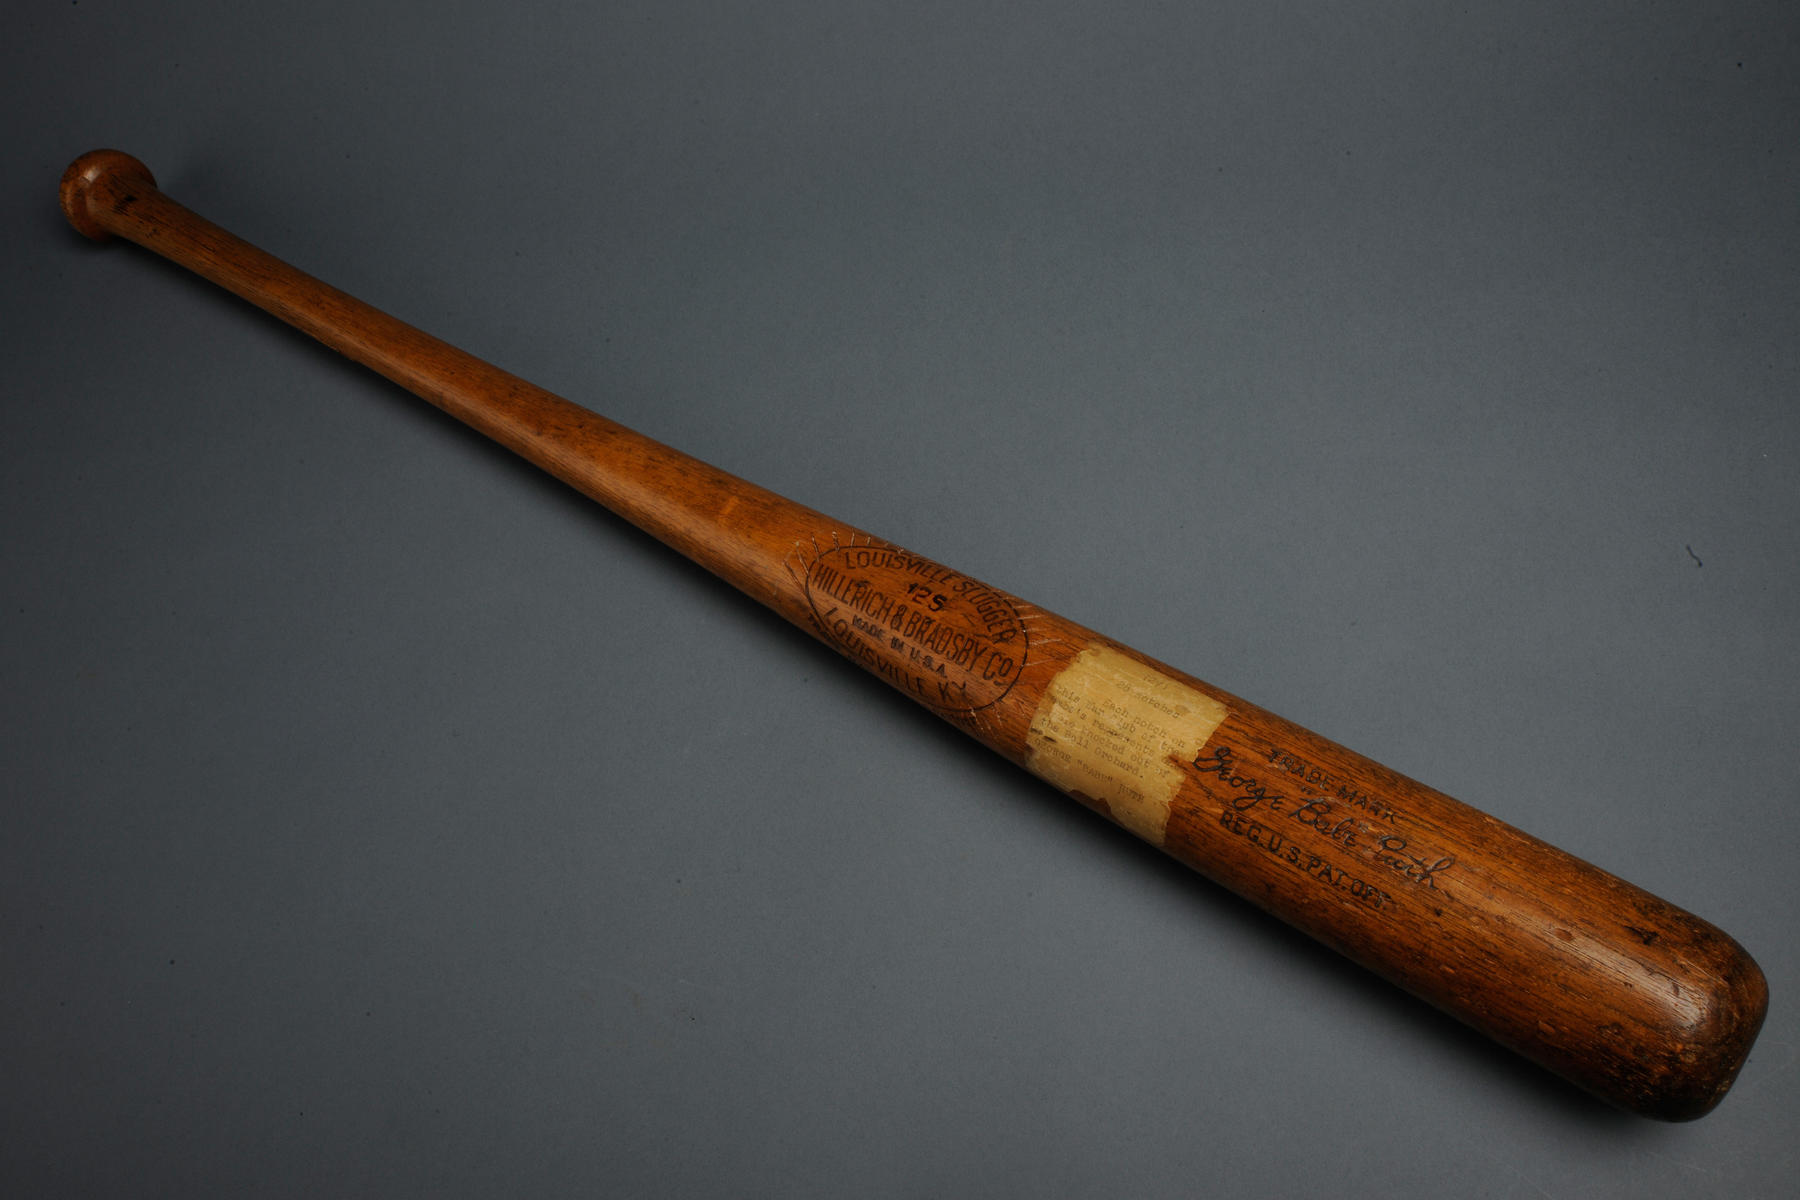 Babe Ruth's notched bat from the 1927 season. B-254-39 (Milo Stewart Jr. / National Baseball Hall of Fame)